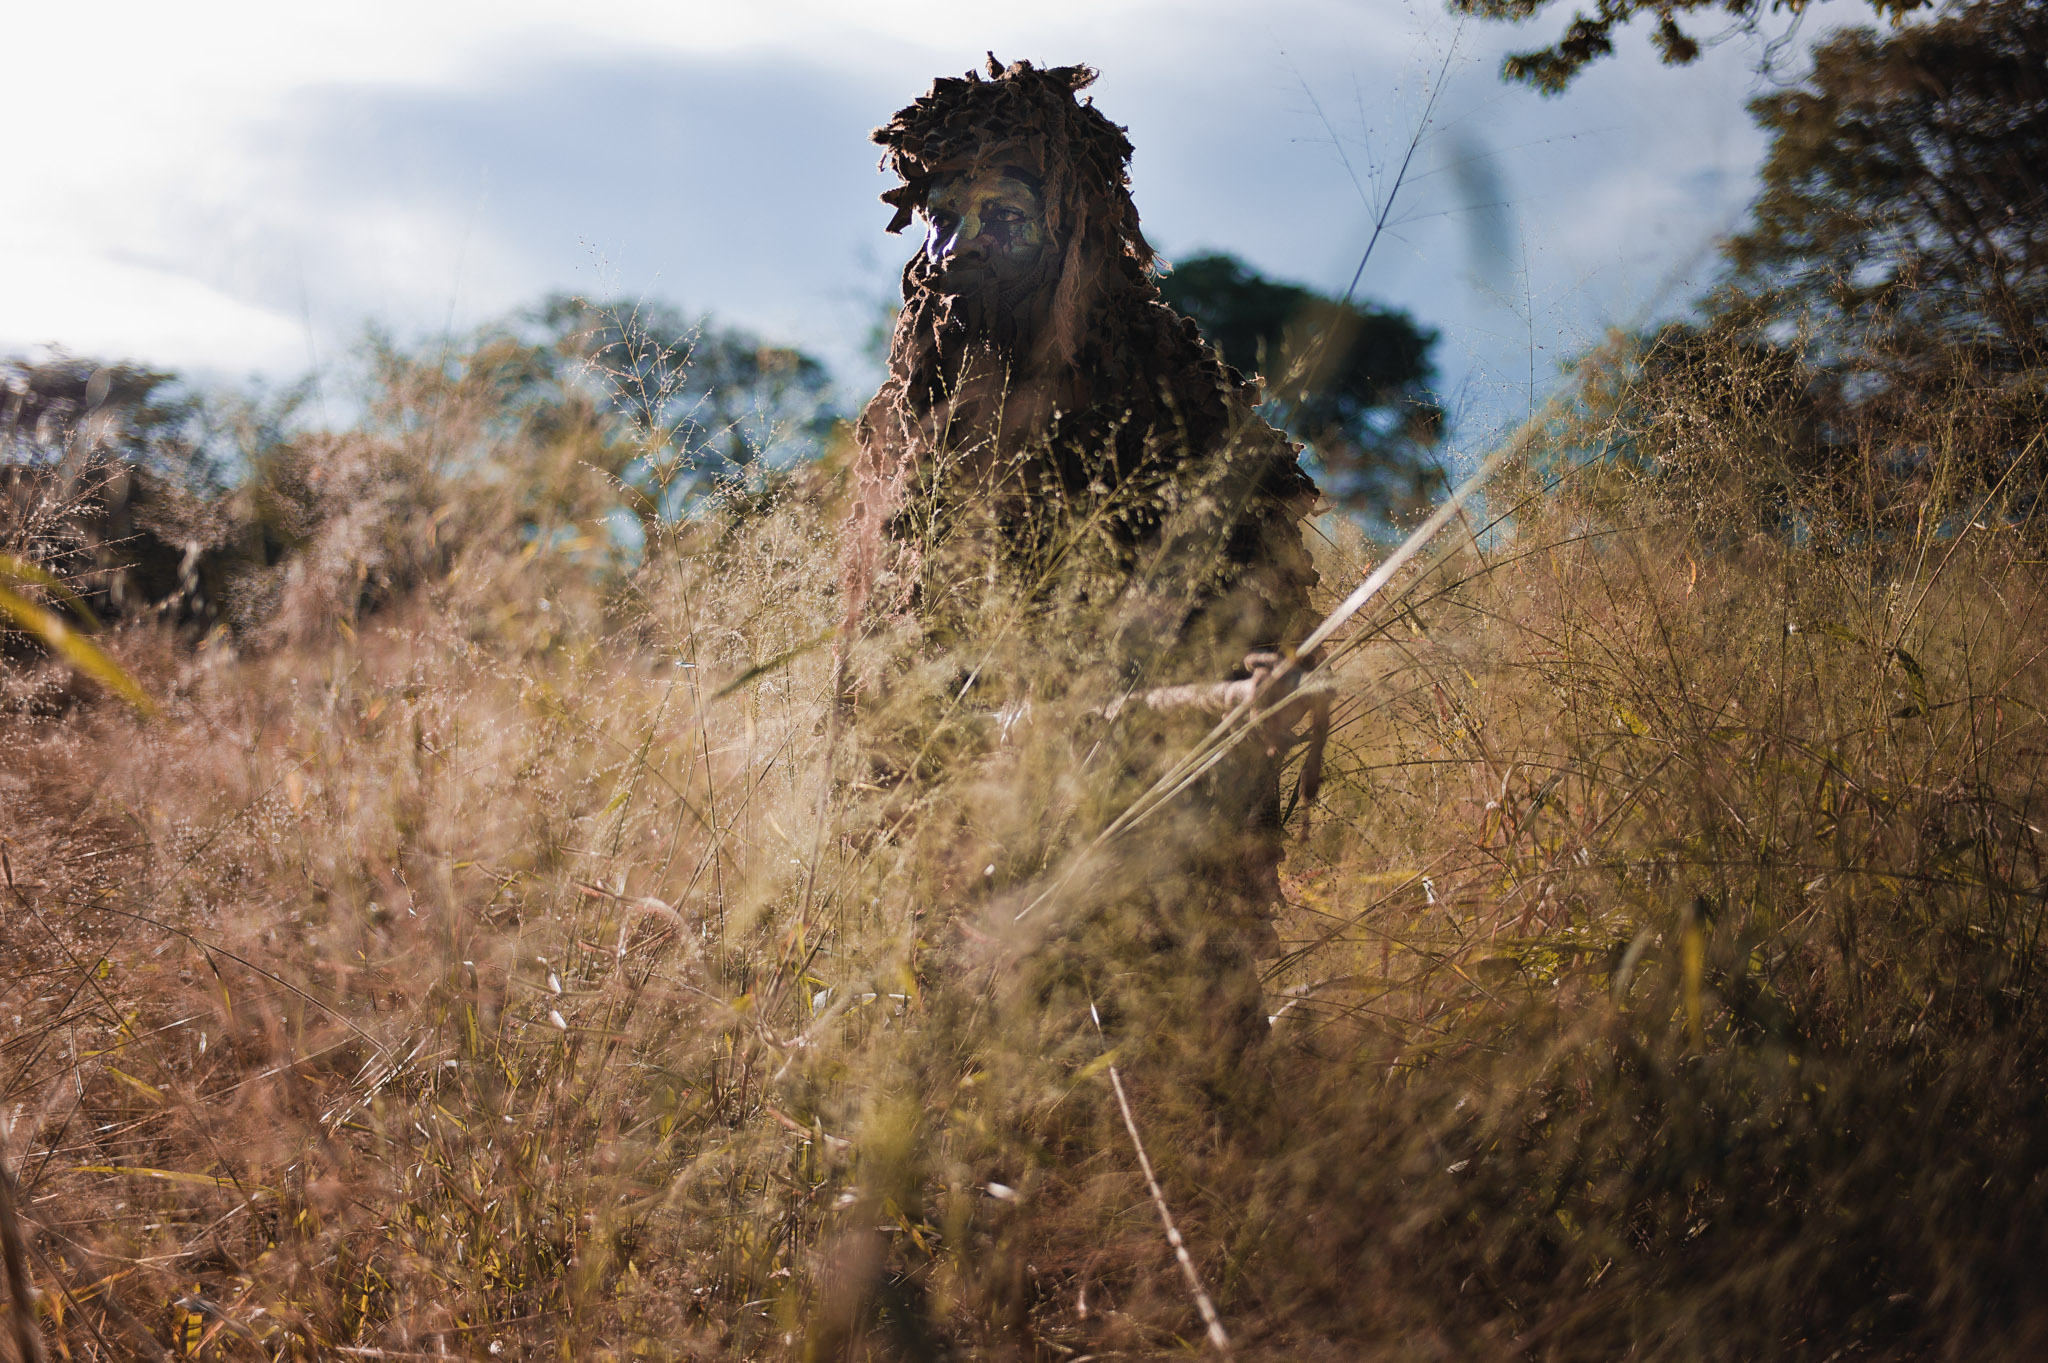 A ranger makes his way through the bush in a ghillie (sniper) suit, ever watchful for signs of poachers in the area. Photograph by Erico Hiller